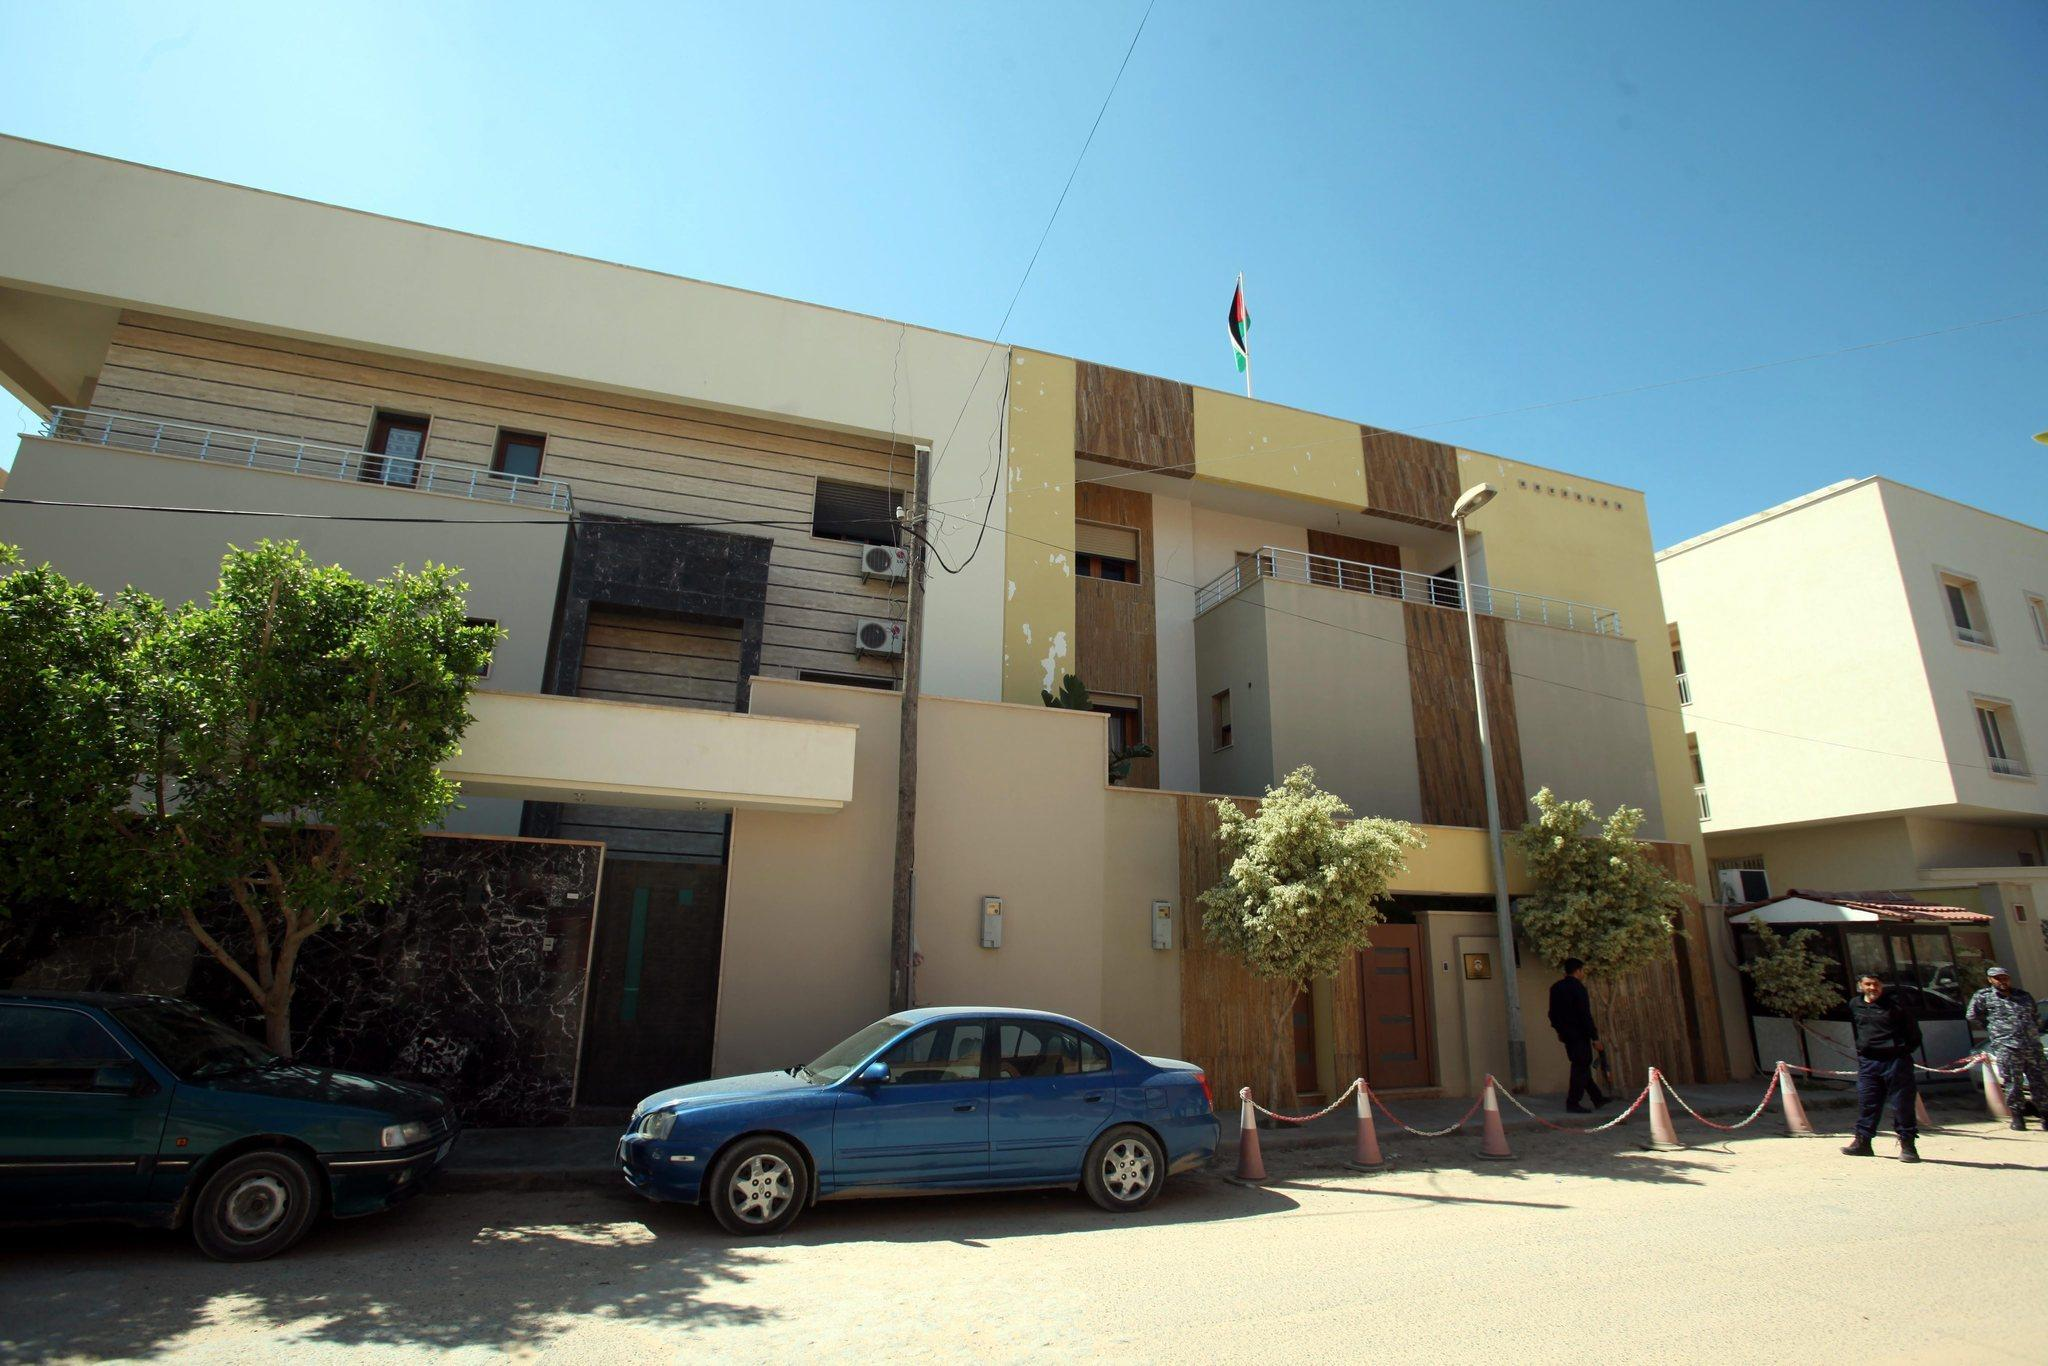 Libyan security officers stand in front of the Jordanian Embassy in Tripoli, Libya, after Ambassador Fawaz Itan was kidnapped by masked gunmen.